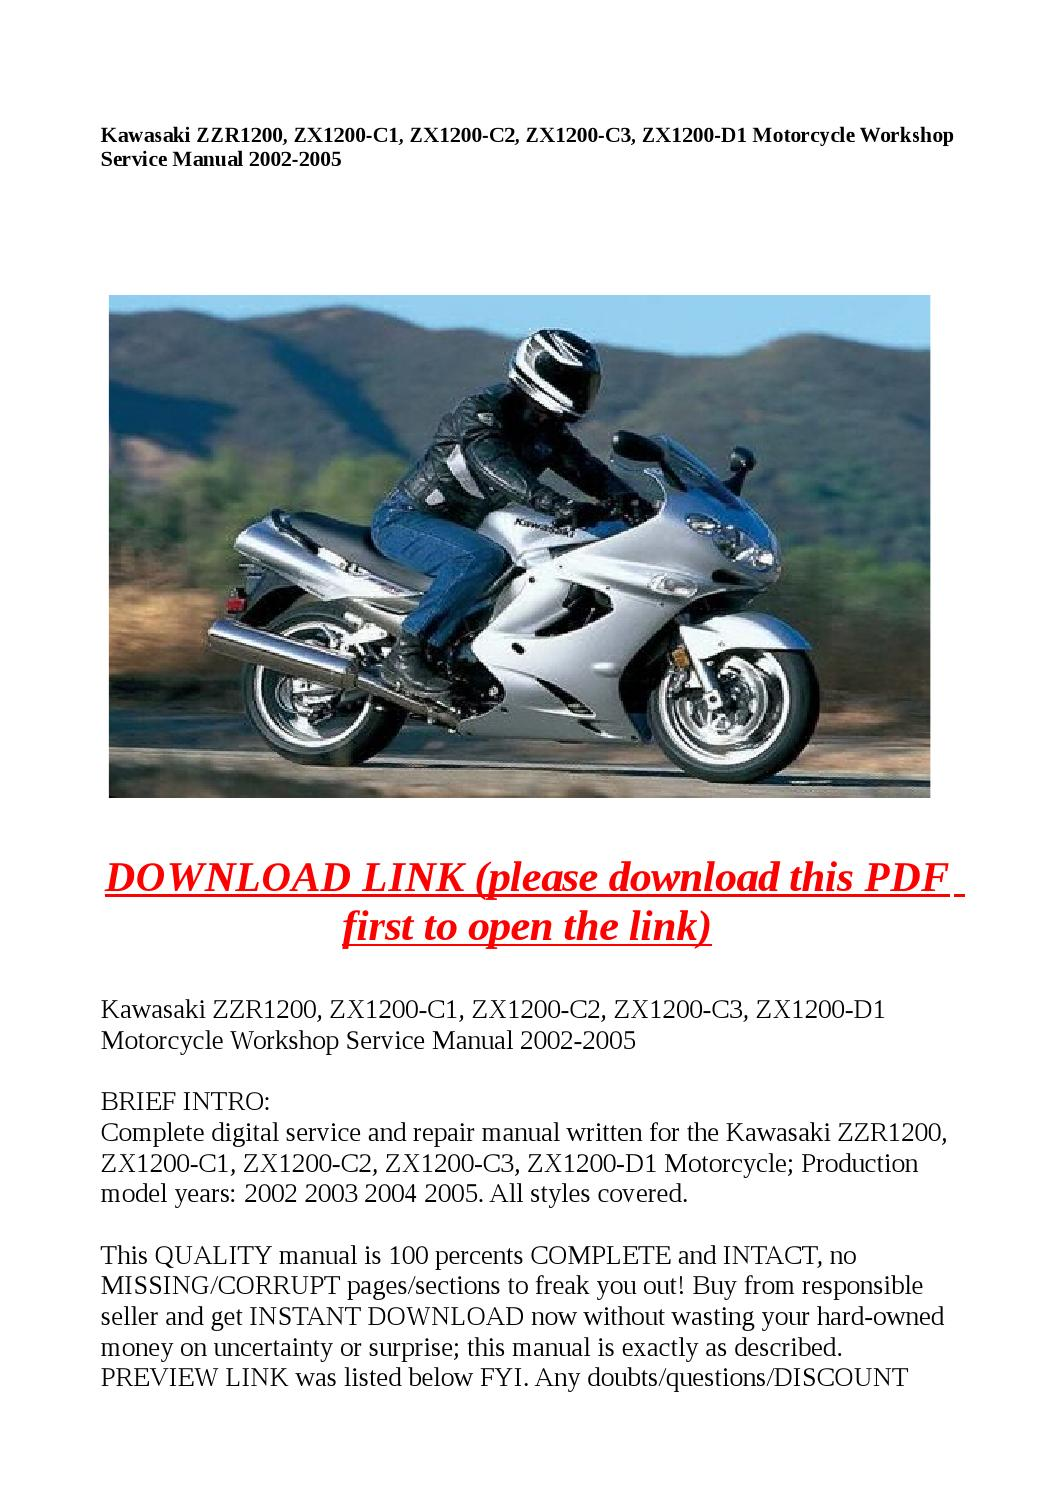 Kawasaki Zzr1200 Zx1200 C1 C2 C3 D1 Wiring Diagram Motorcycle Workshop Service Manual 2002 By Dale Issuu